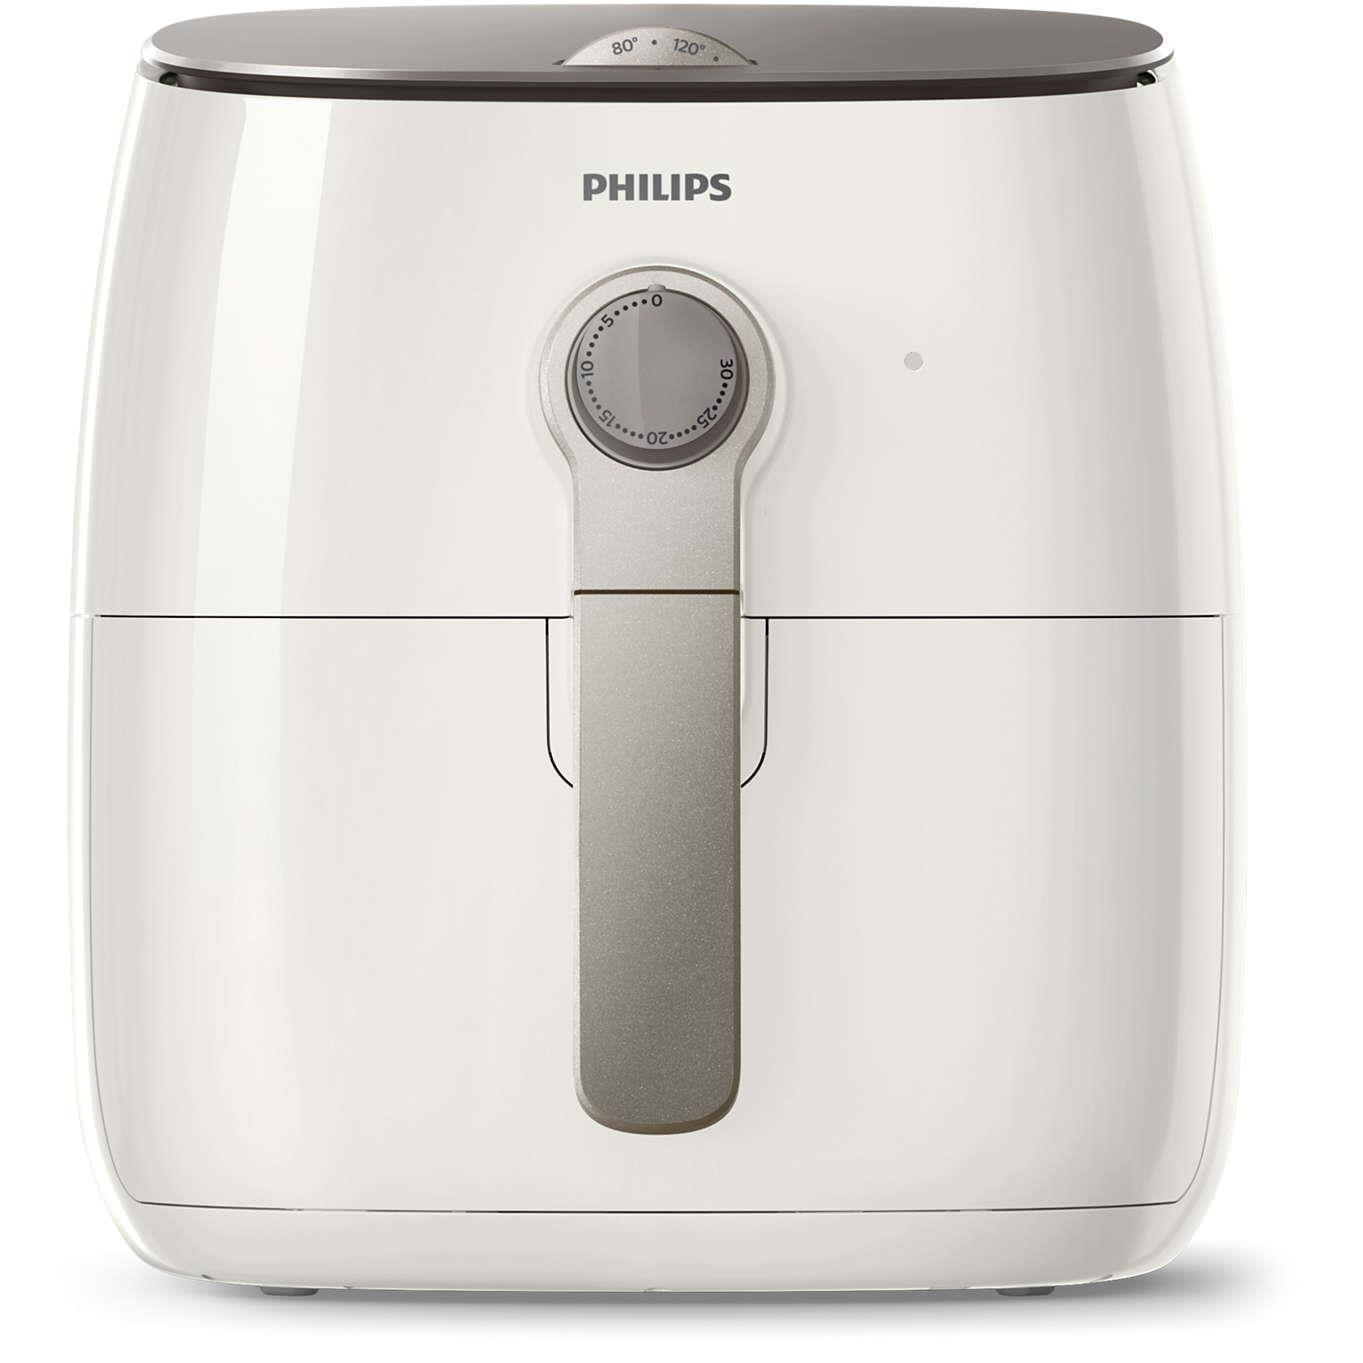 Philips HD9721/21 Viva Collection TurboStar Airfyer (White)